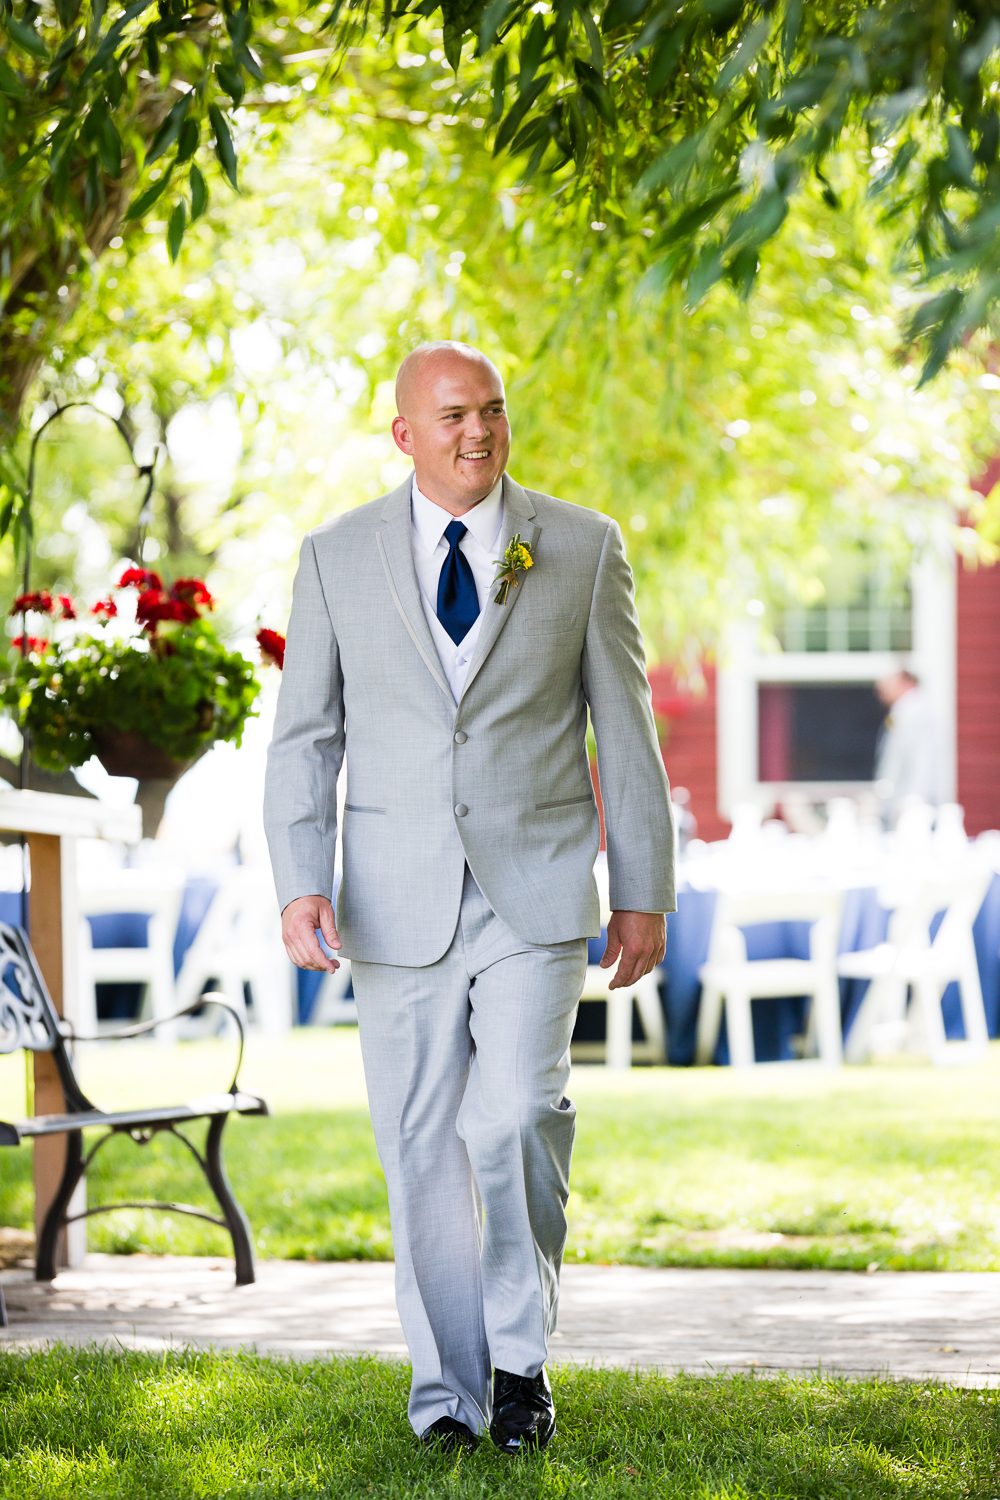 bozeman-montana-wedding-roys-barn-groom-during-precessional.jpg